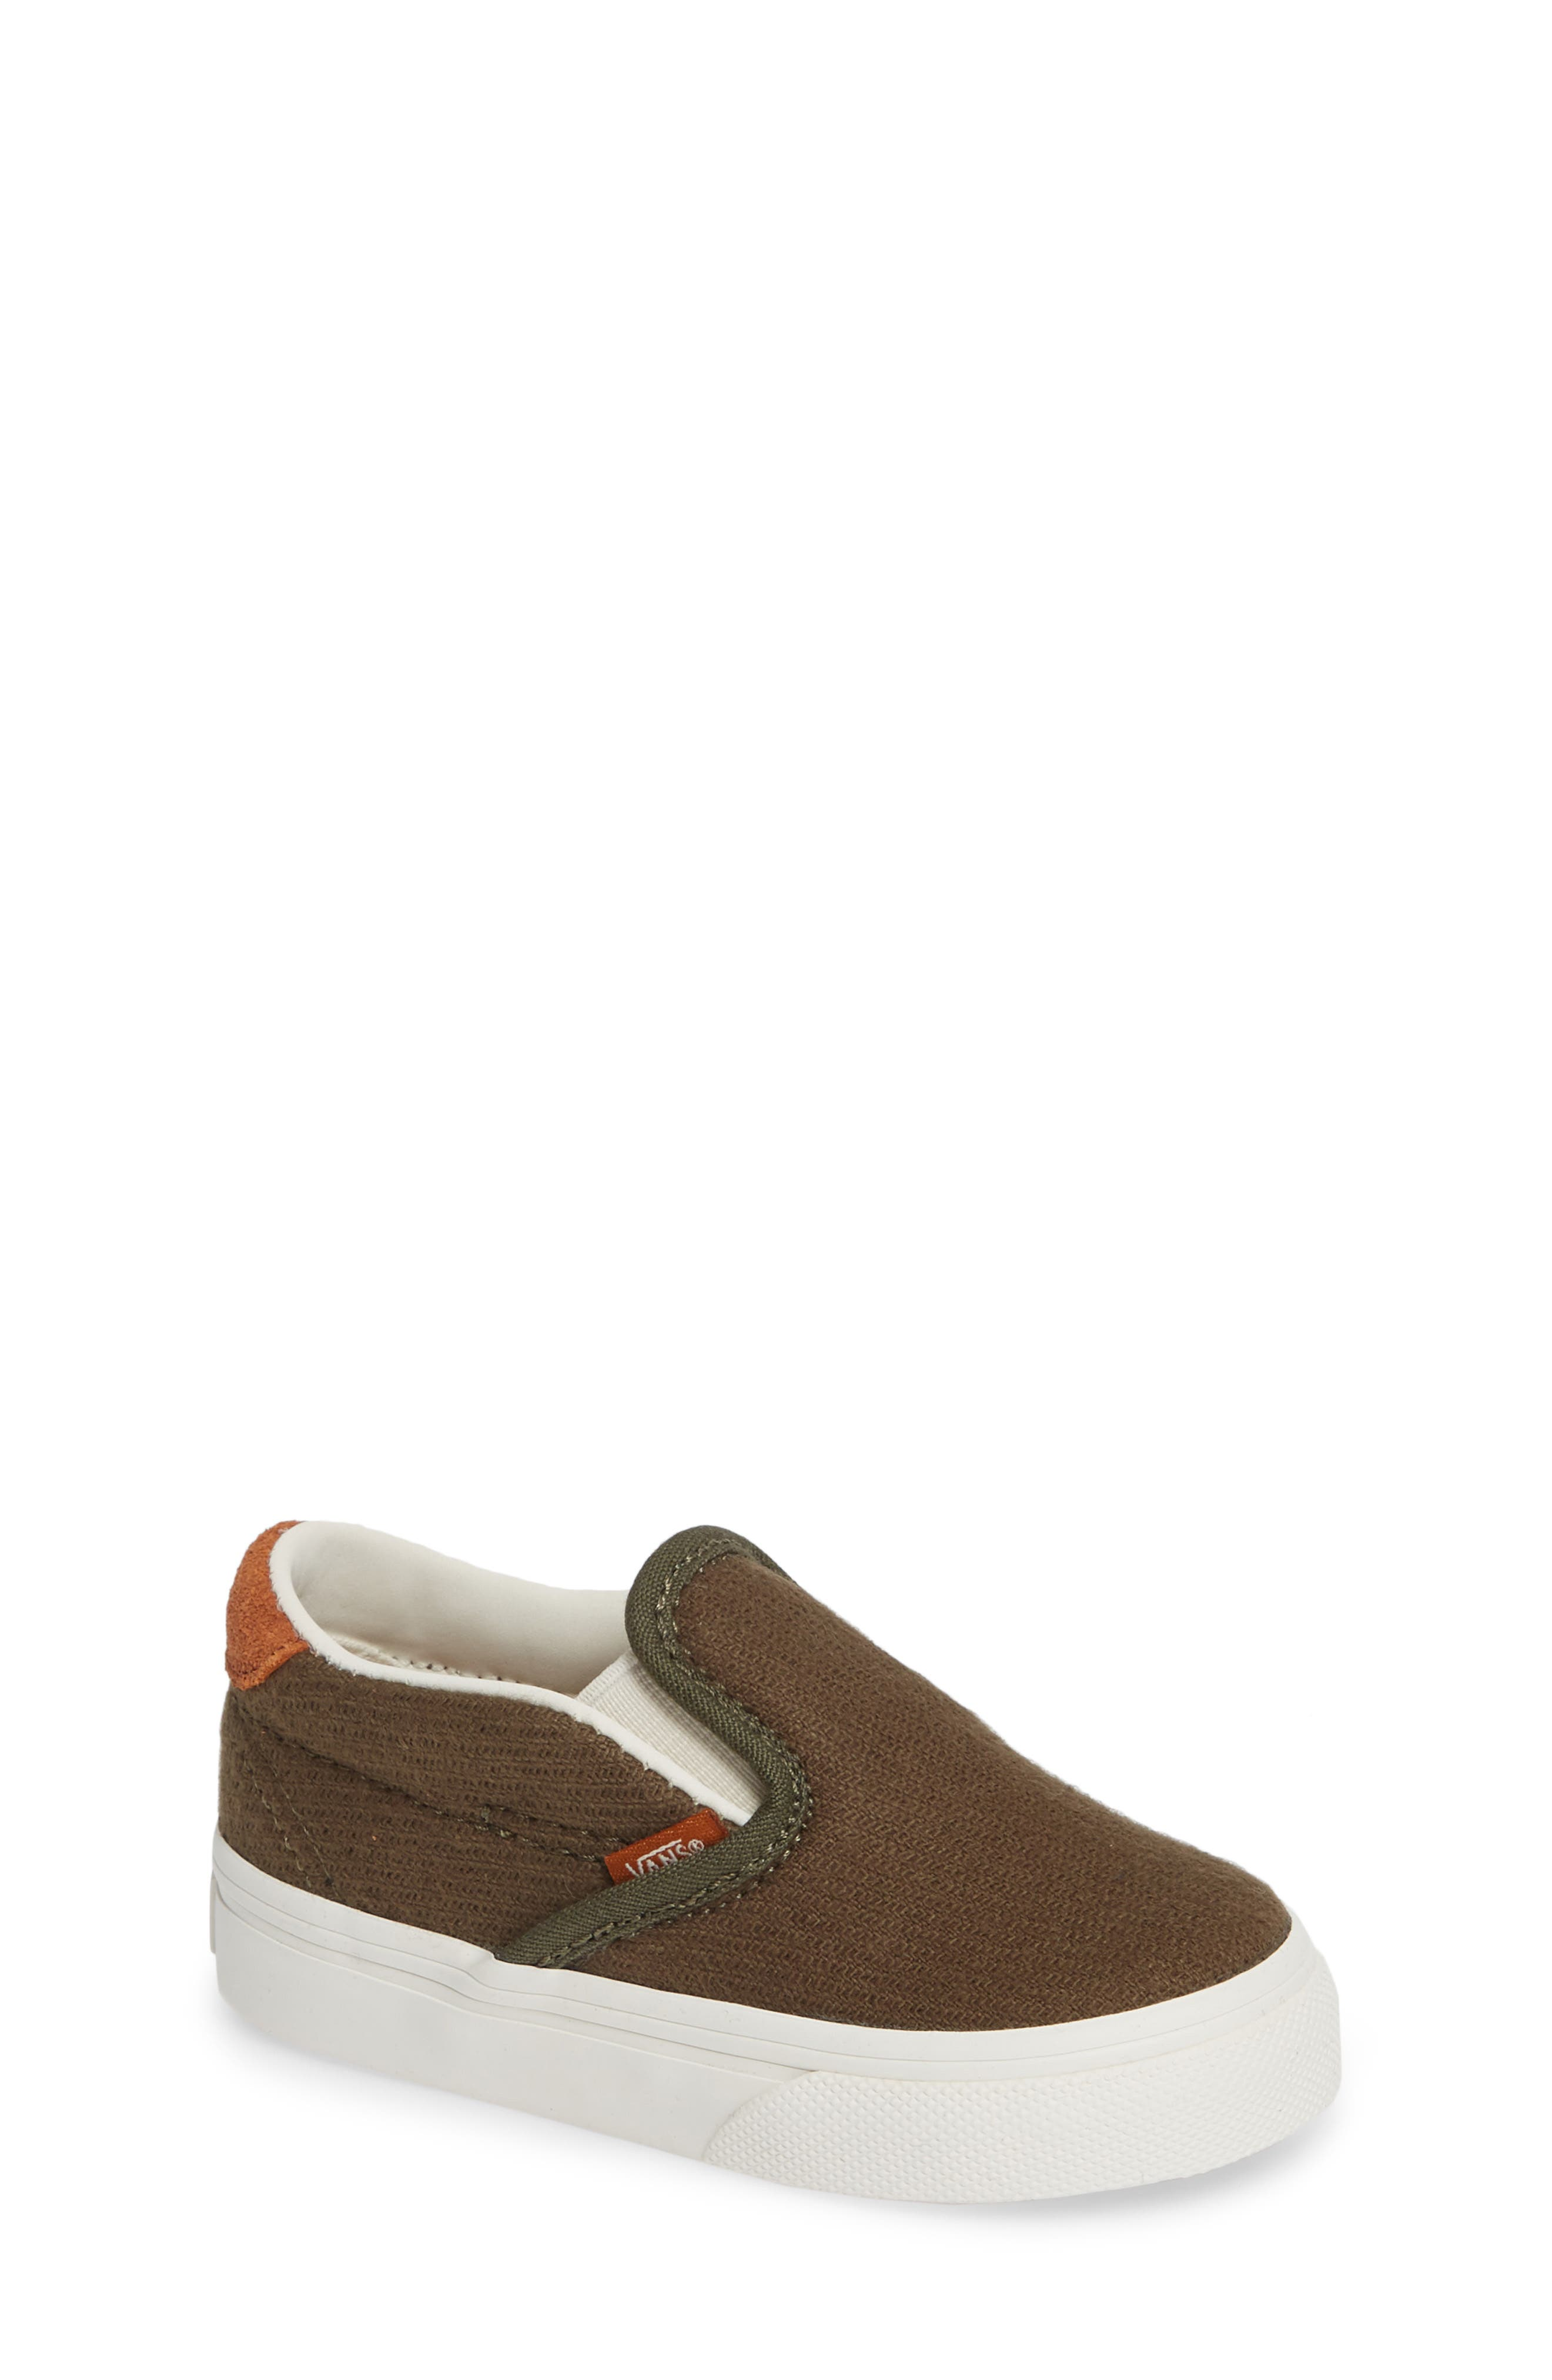 59 Slip-On Sneaker,                         Main,                         color, FLANNEL DUSTY OLIVE